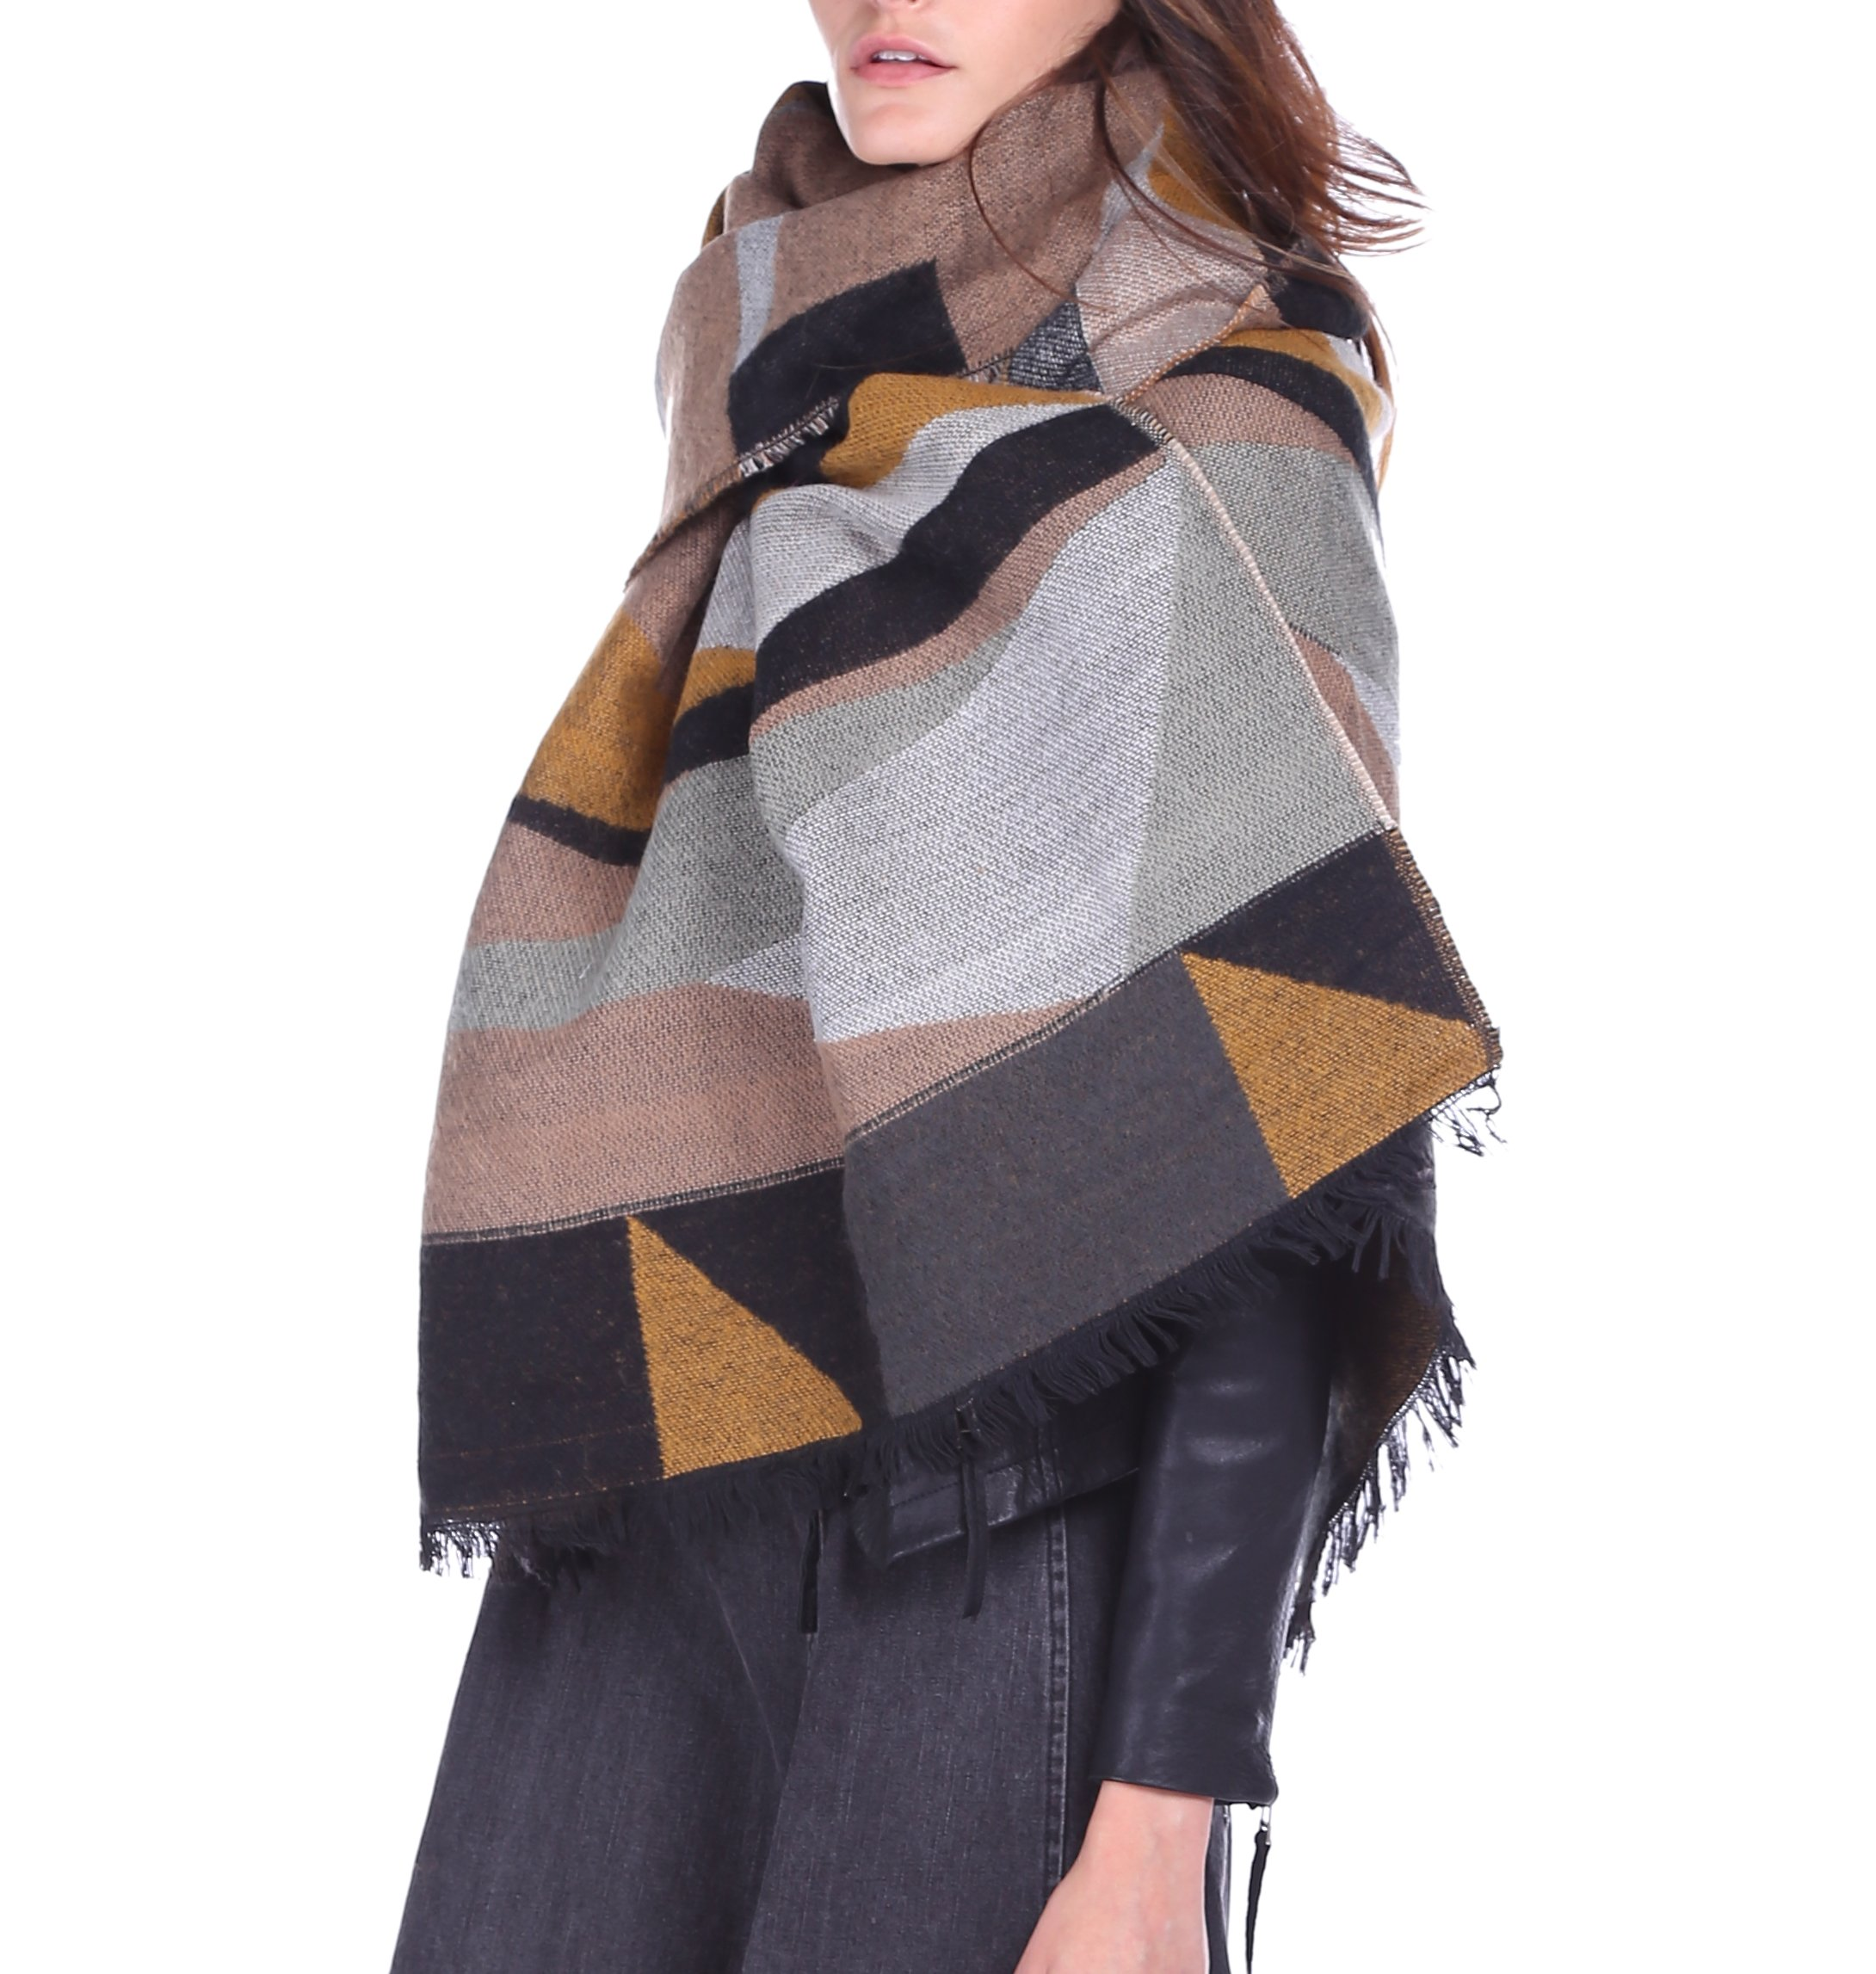 Afibi Women's Long Color Block Blanket Shawl Fashion Winter Warm Large Scarf (Brown)